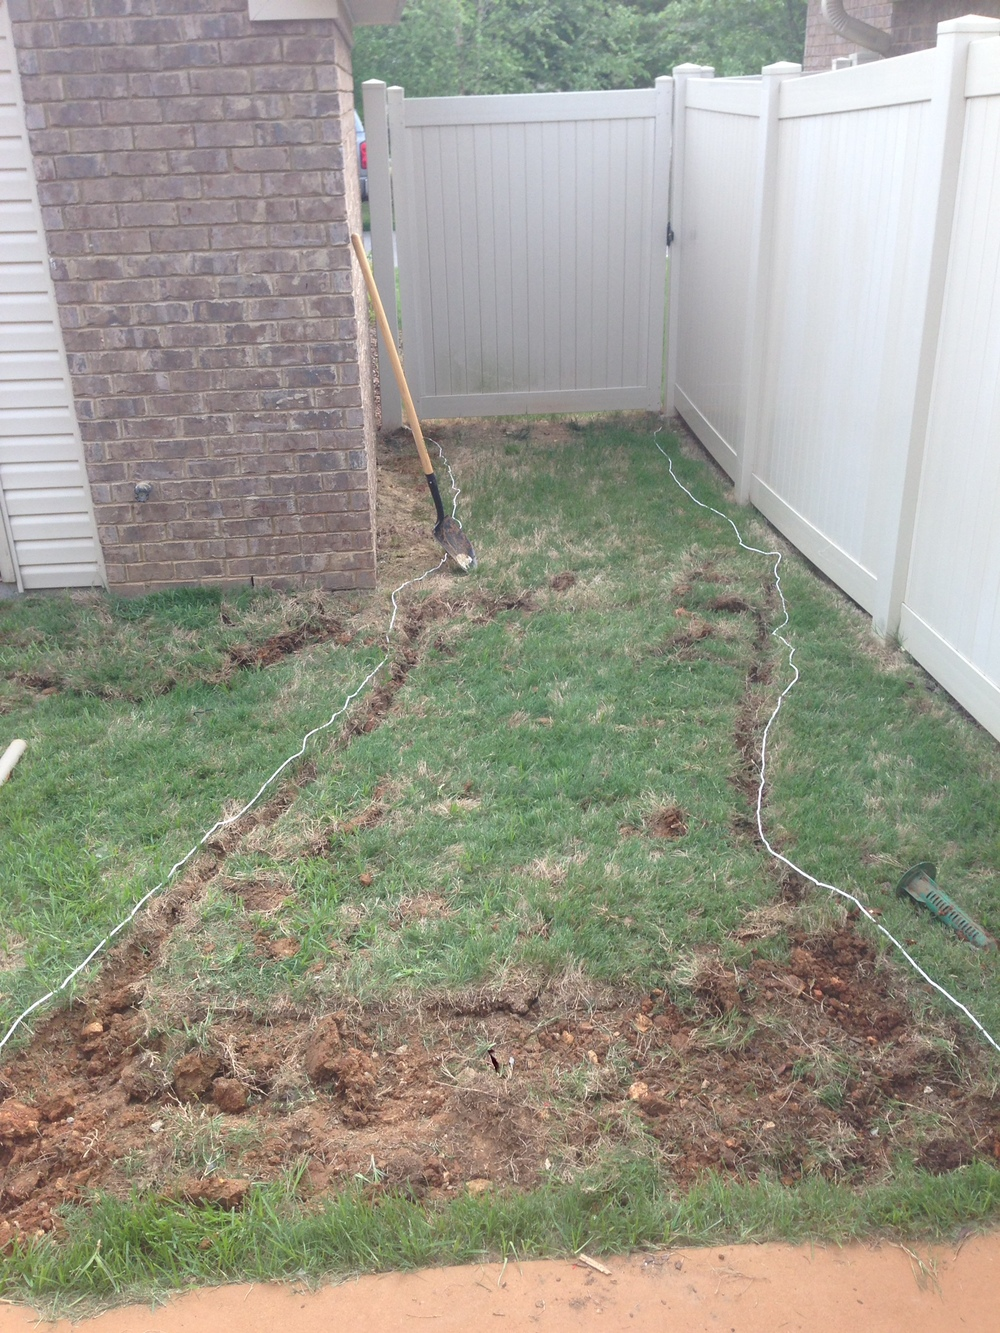 Rope laid out as a guide and shallow trench dug where rope was placed.